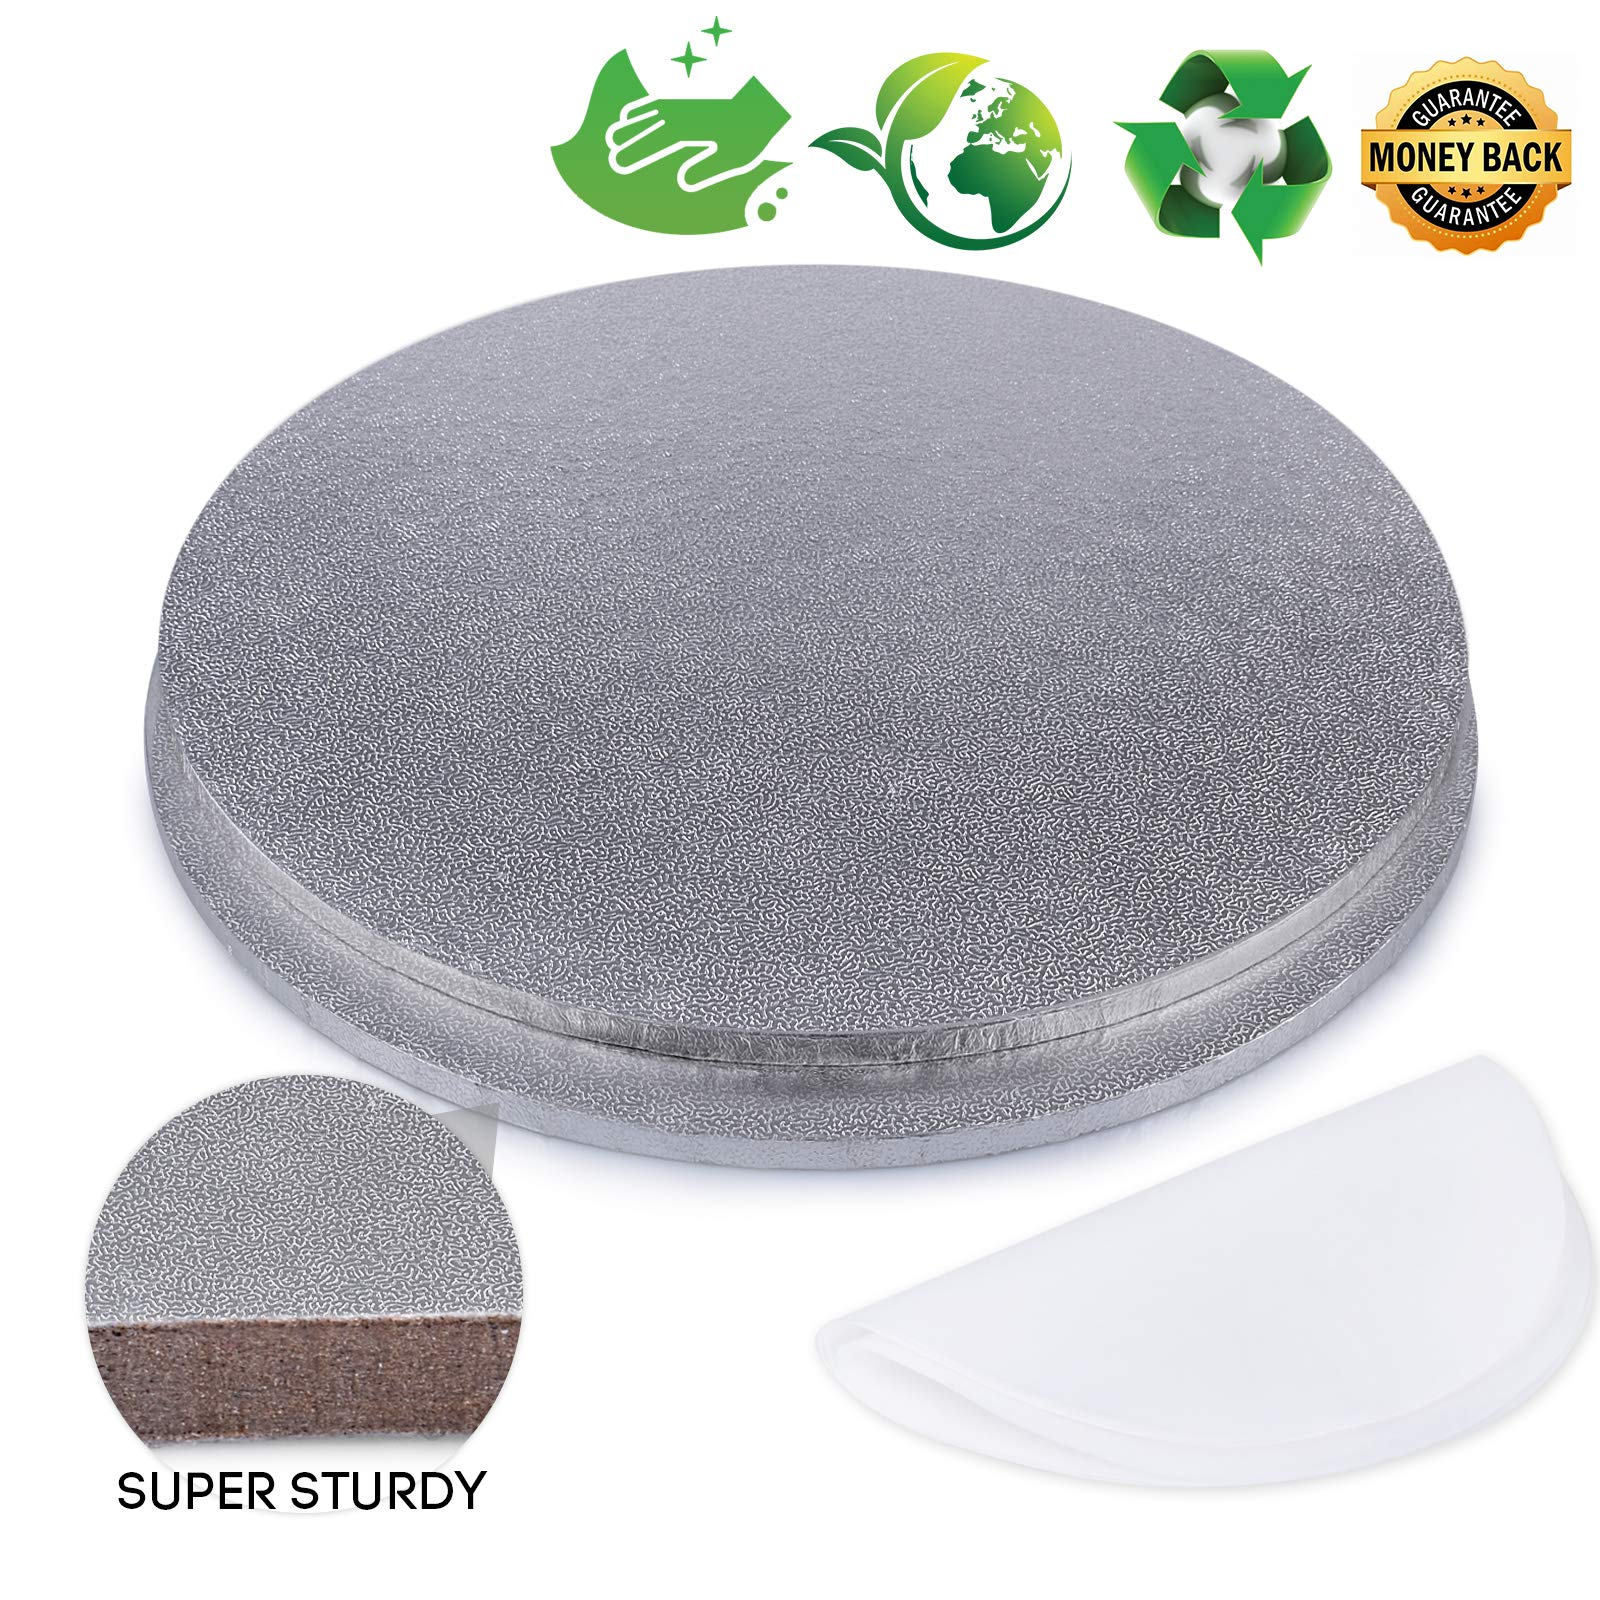 Bonviee Cake Drum Sliver Round Cake Boards 12 Inch 5mm Thickness Cake Circle Base Cardboard Grease Proof for Presenting Decorated Cakes (2 Pack)